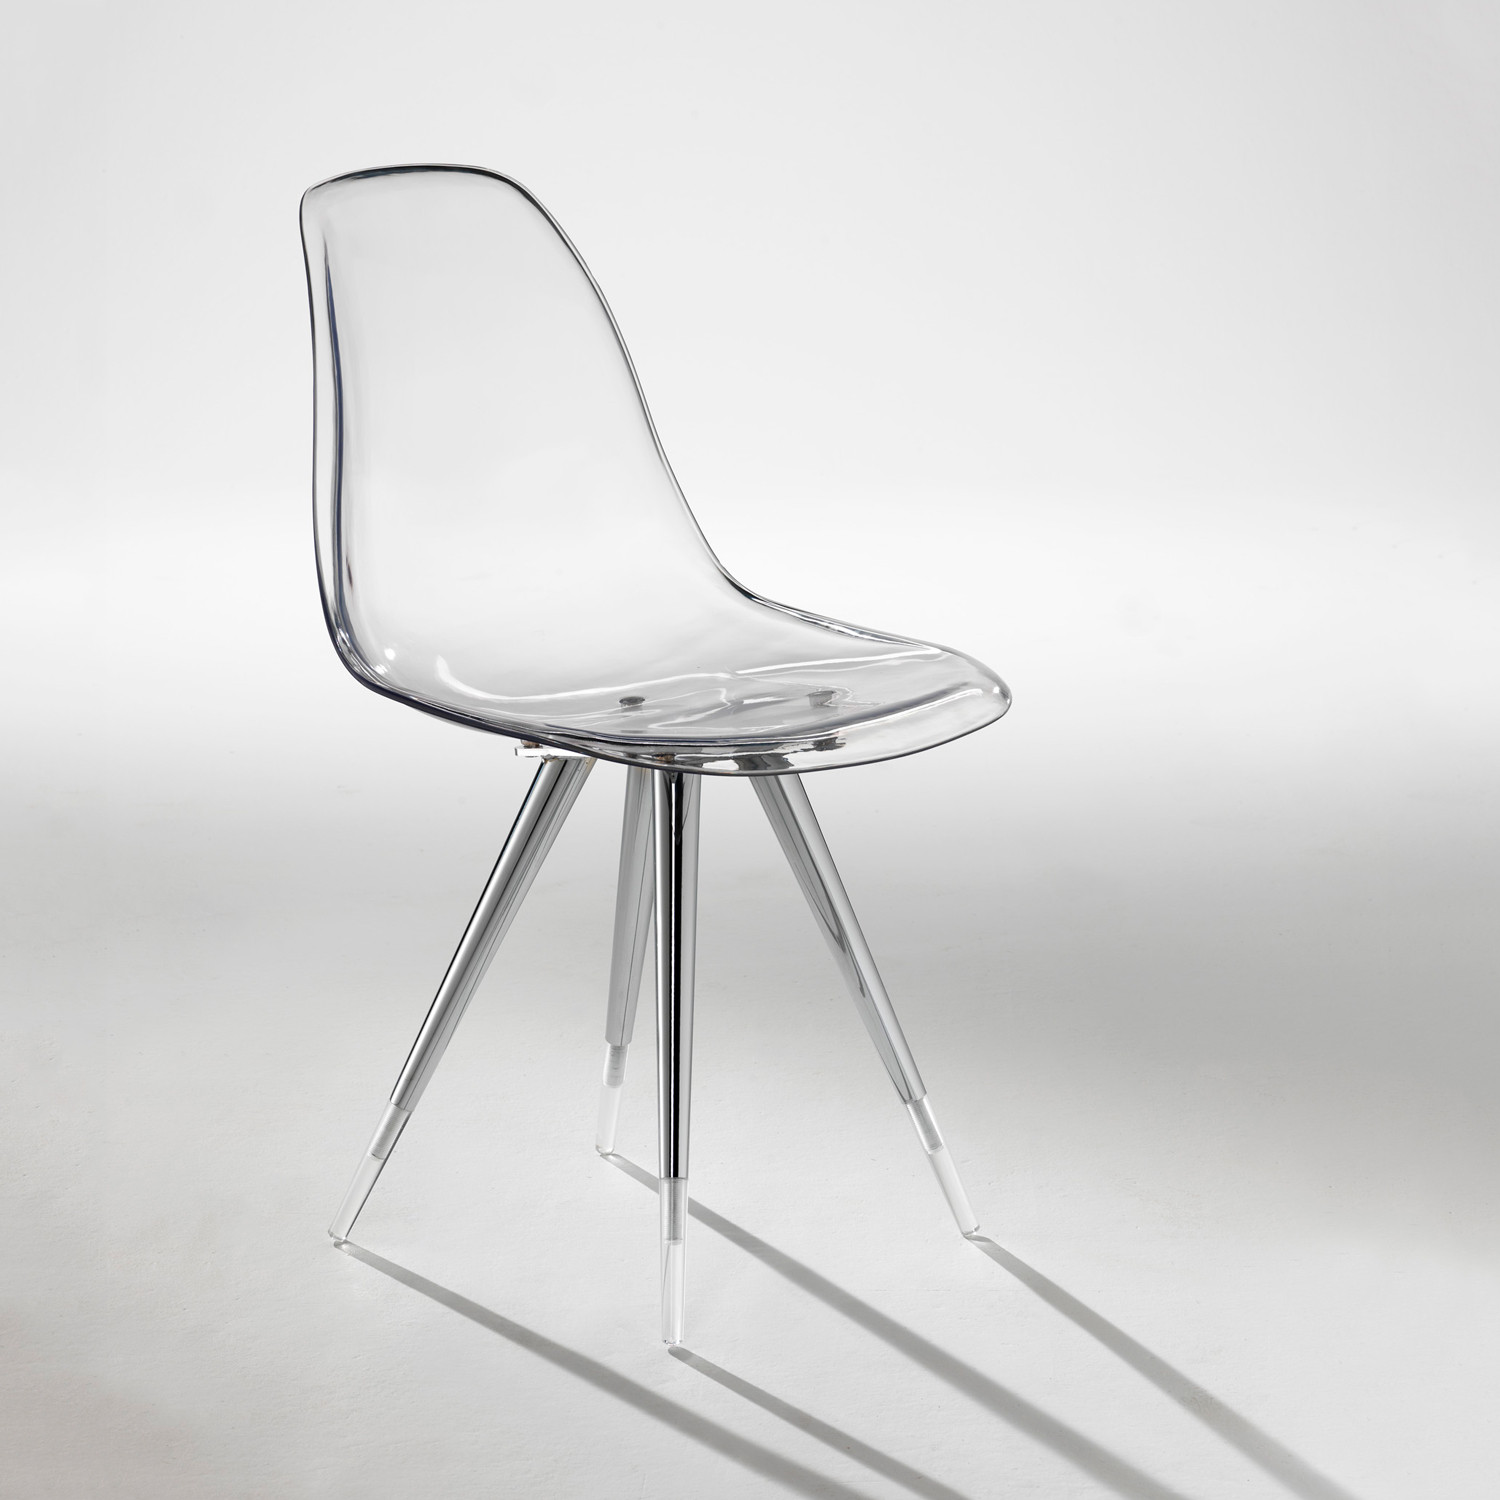 angel base chair  transparent shell  kubikoff  touch of modern - angel base chair  transparent shell